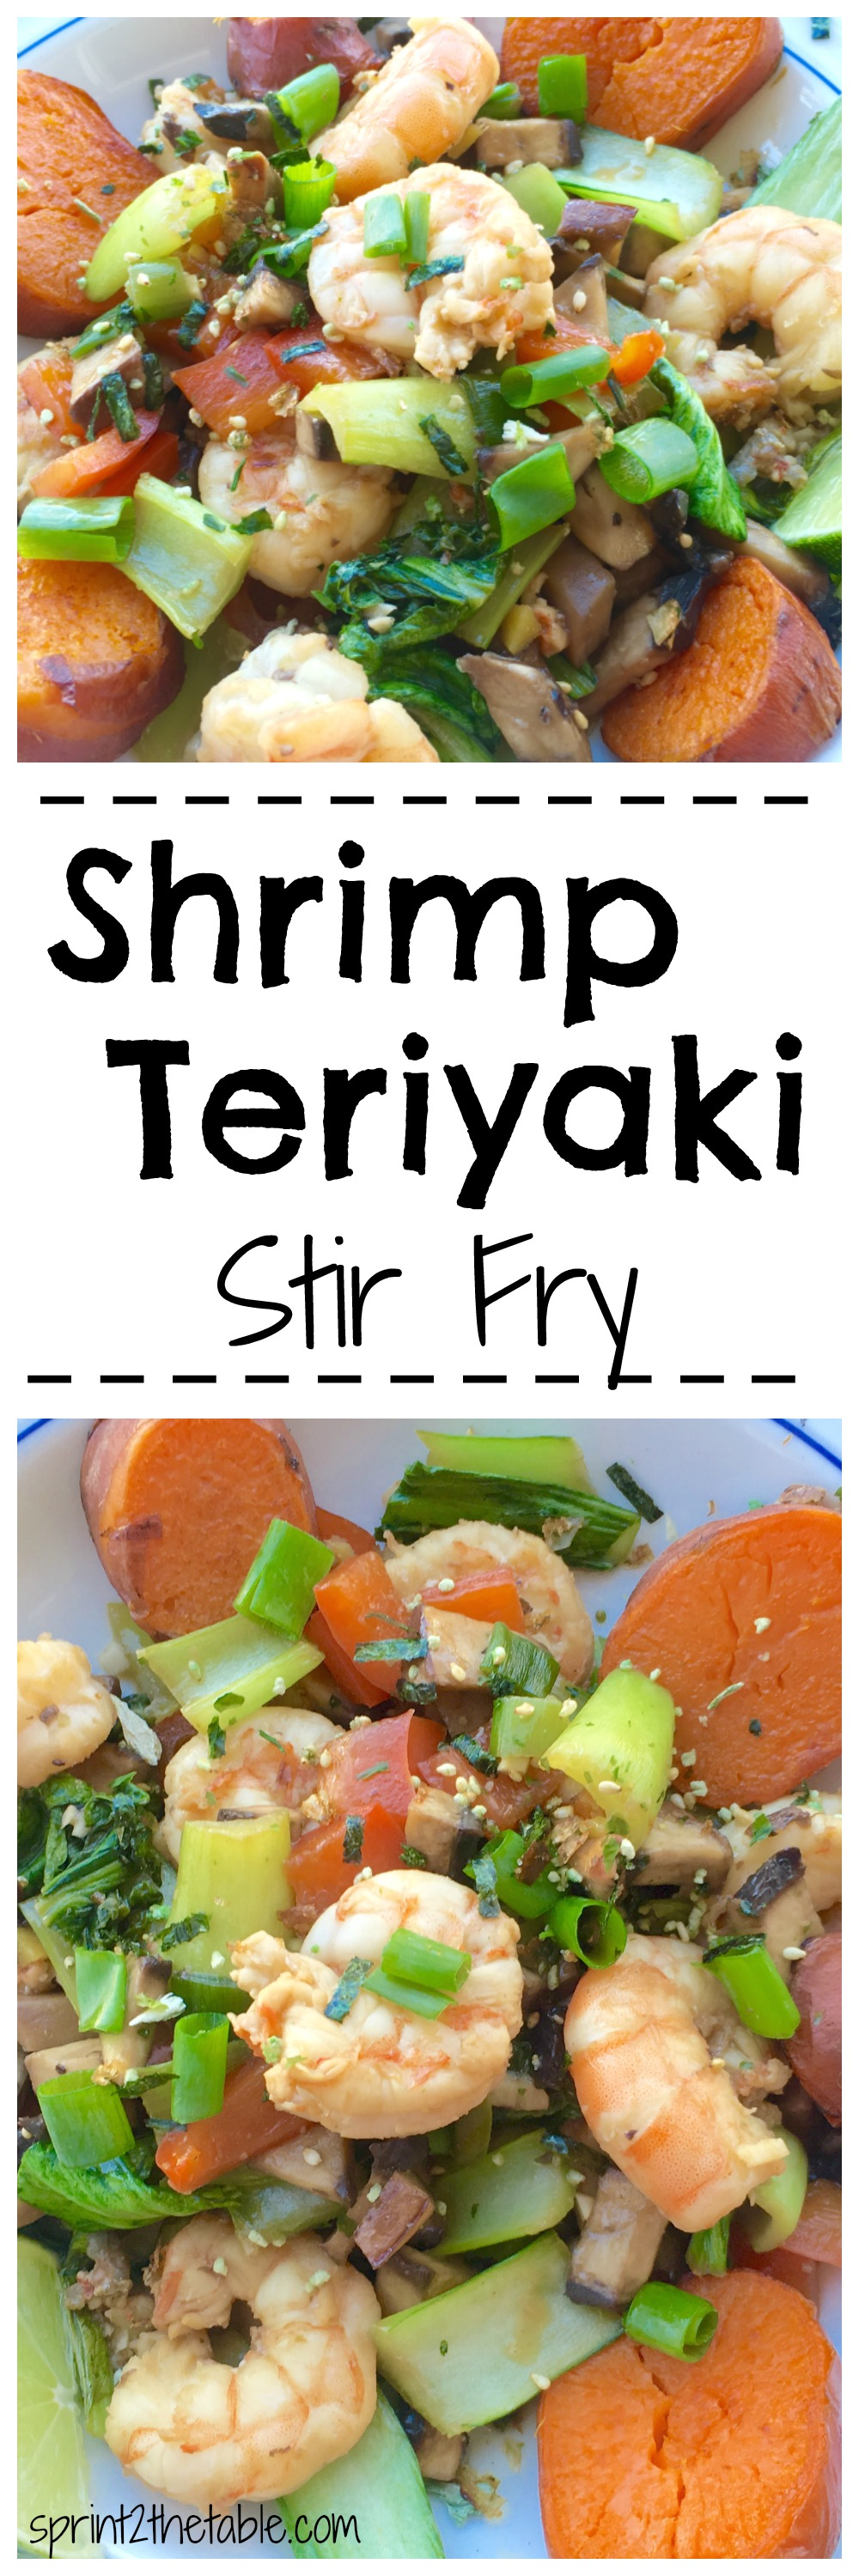 This yummy teriyaki stir fry recipe means you'll never need take out again. The marinade for the shrimp is just 3 ingredients!